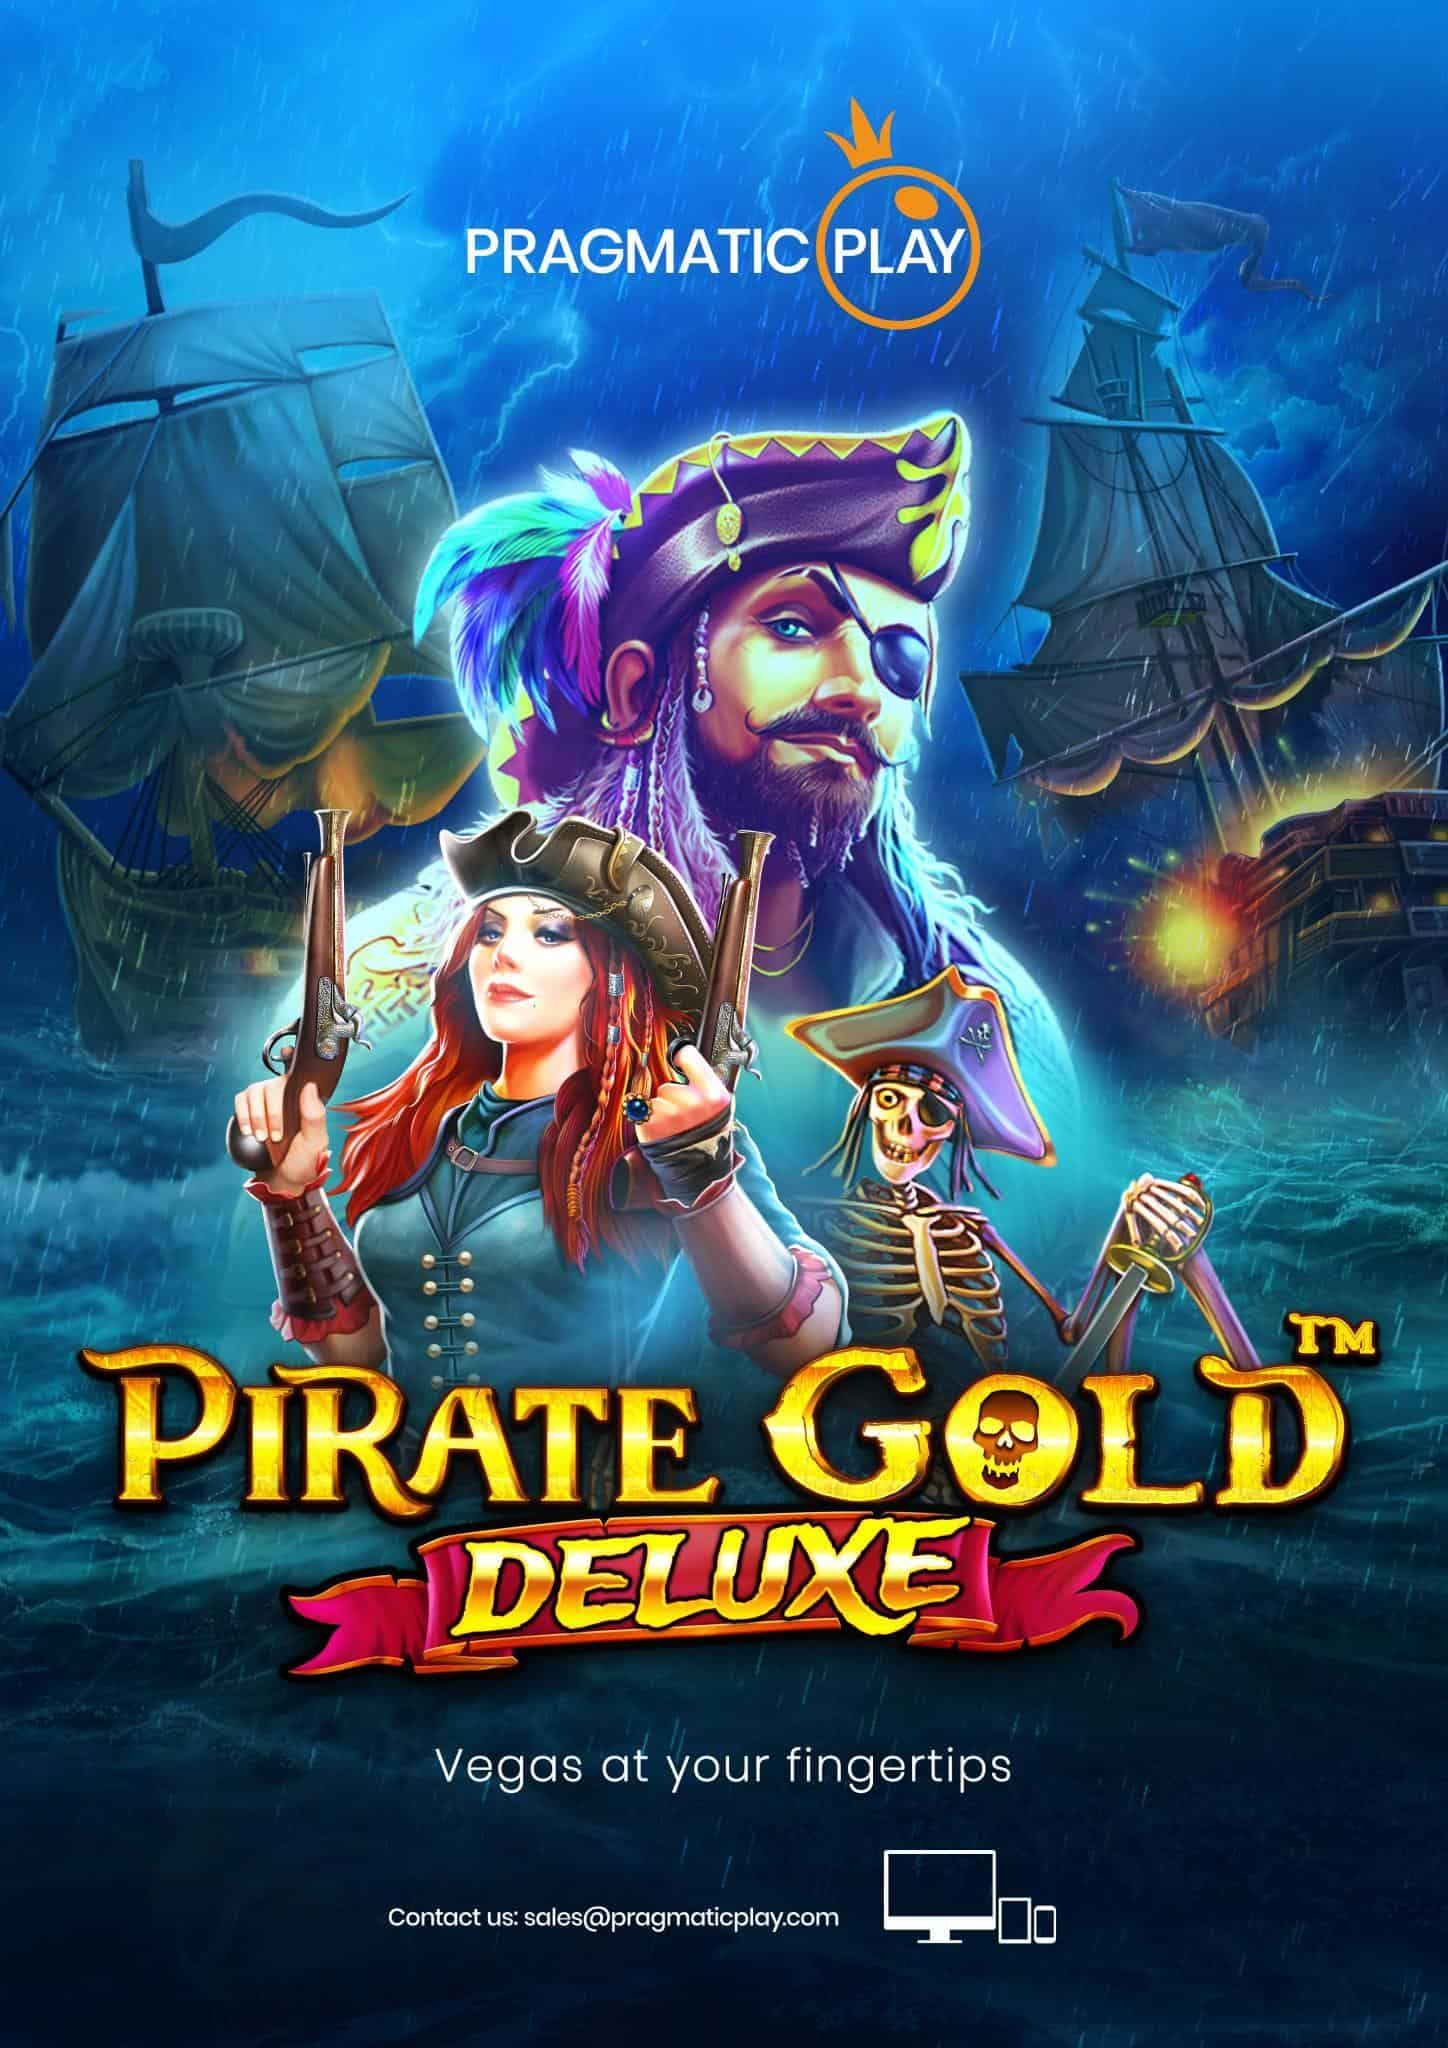 Pirate Gold Deluxe spillemaskine